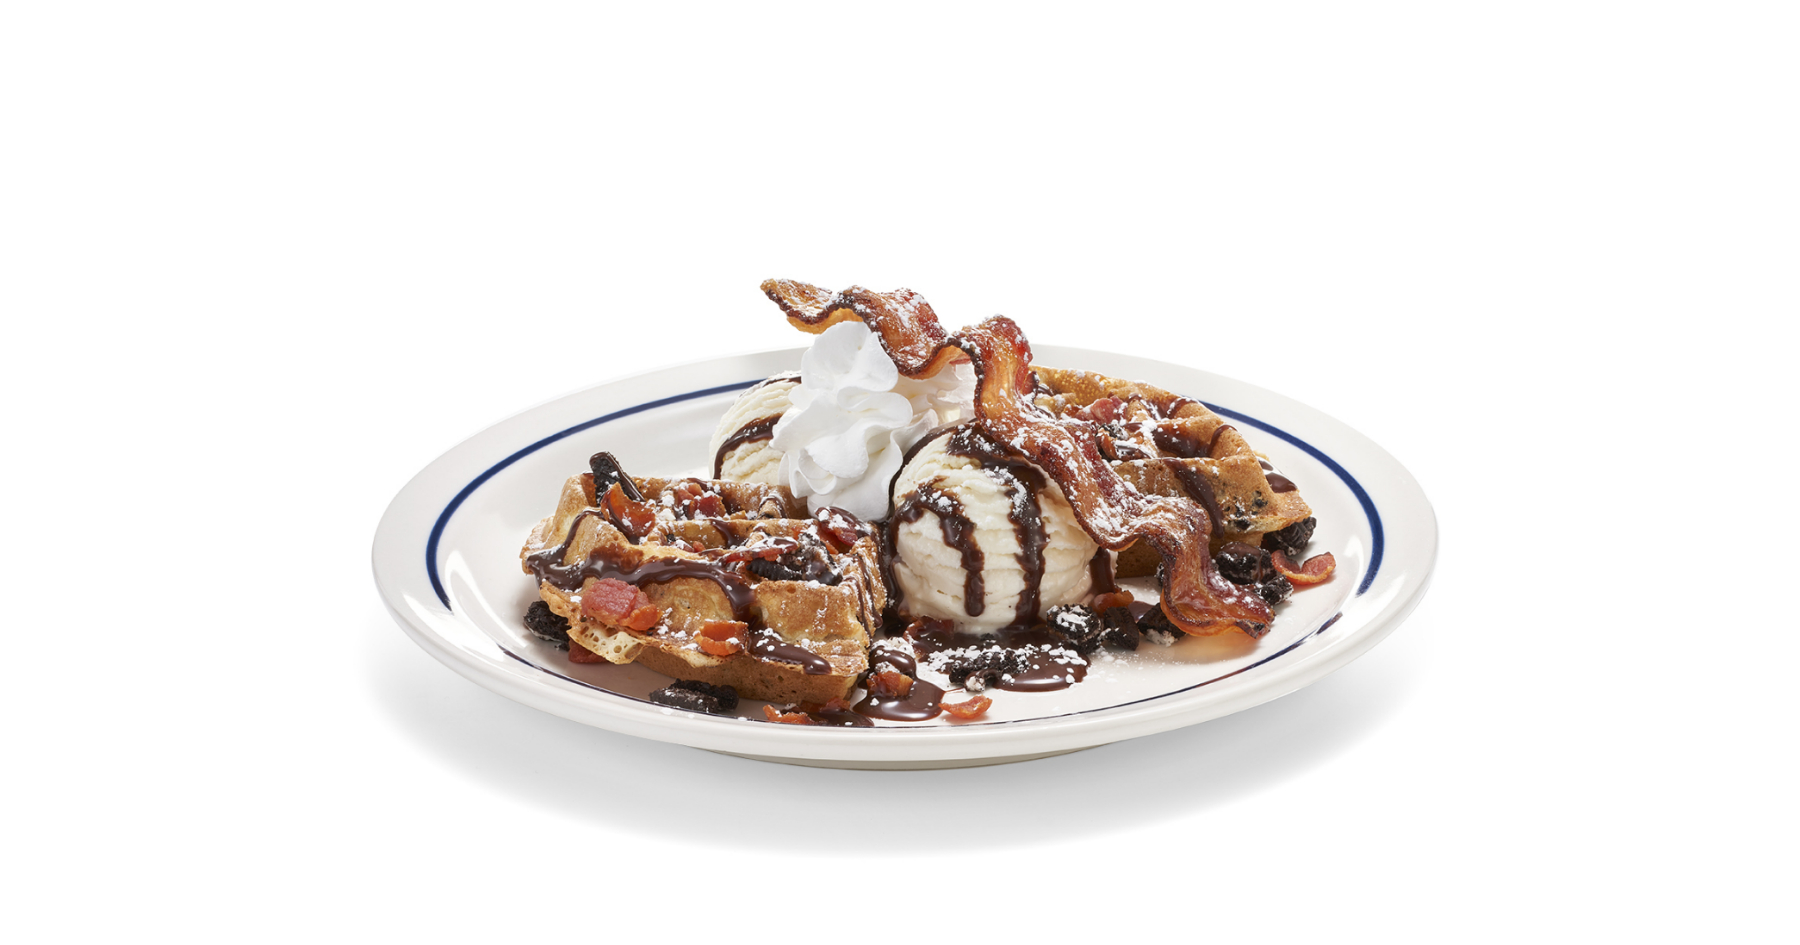 IHOP's candied bacon